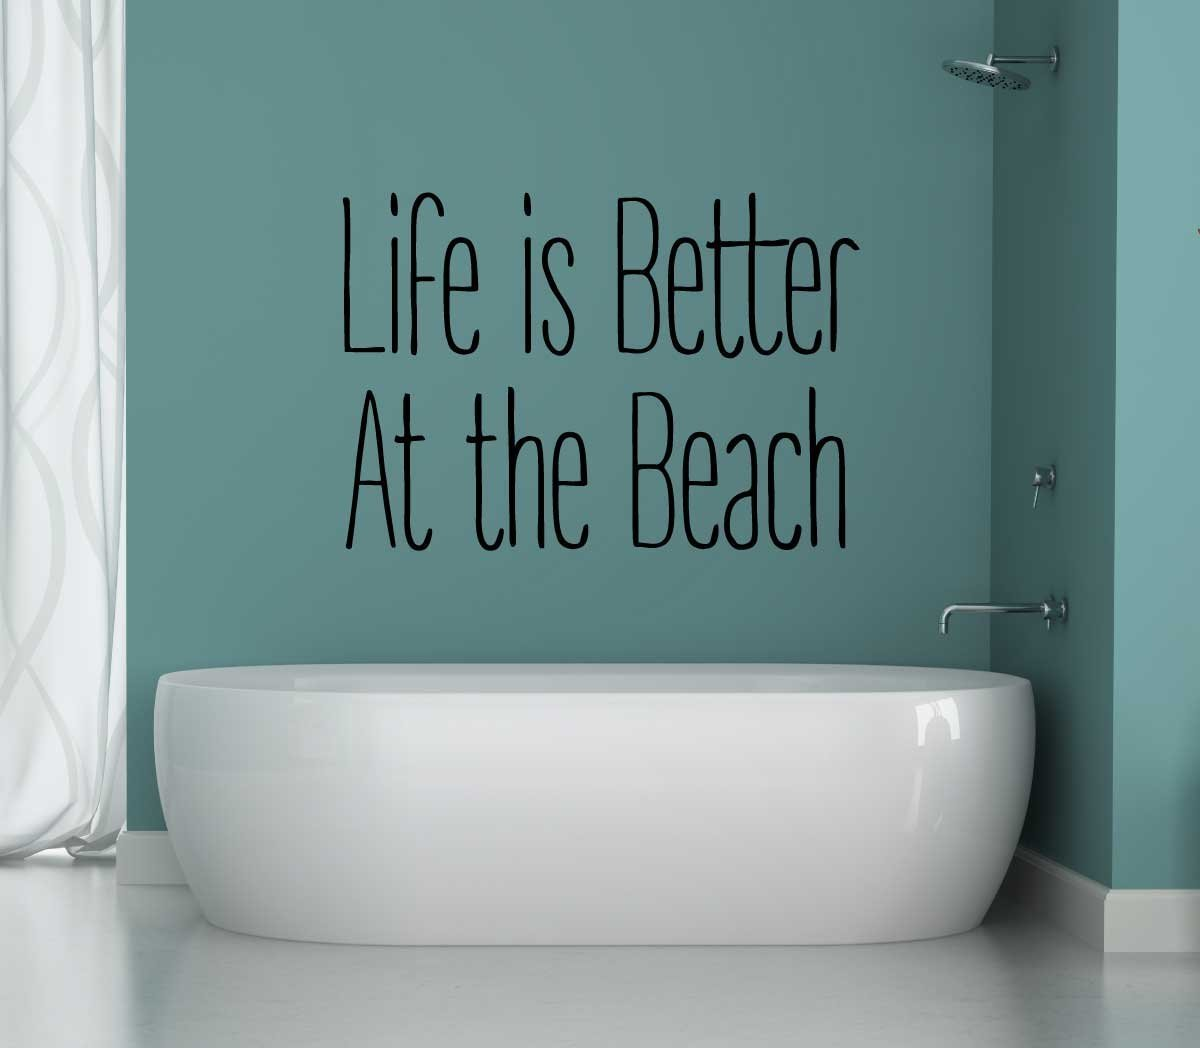 Amazon Com Cmi Ni210 Life Is Better At The Beach 3 1 2 X 7 1 2 Die Cut Vinyl Decal For Cars Trucks Windows Boats Tool Boxes Laptops Etc Automotive